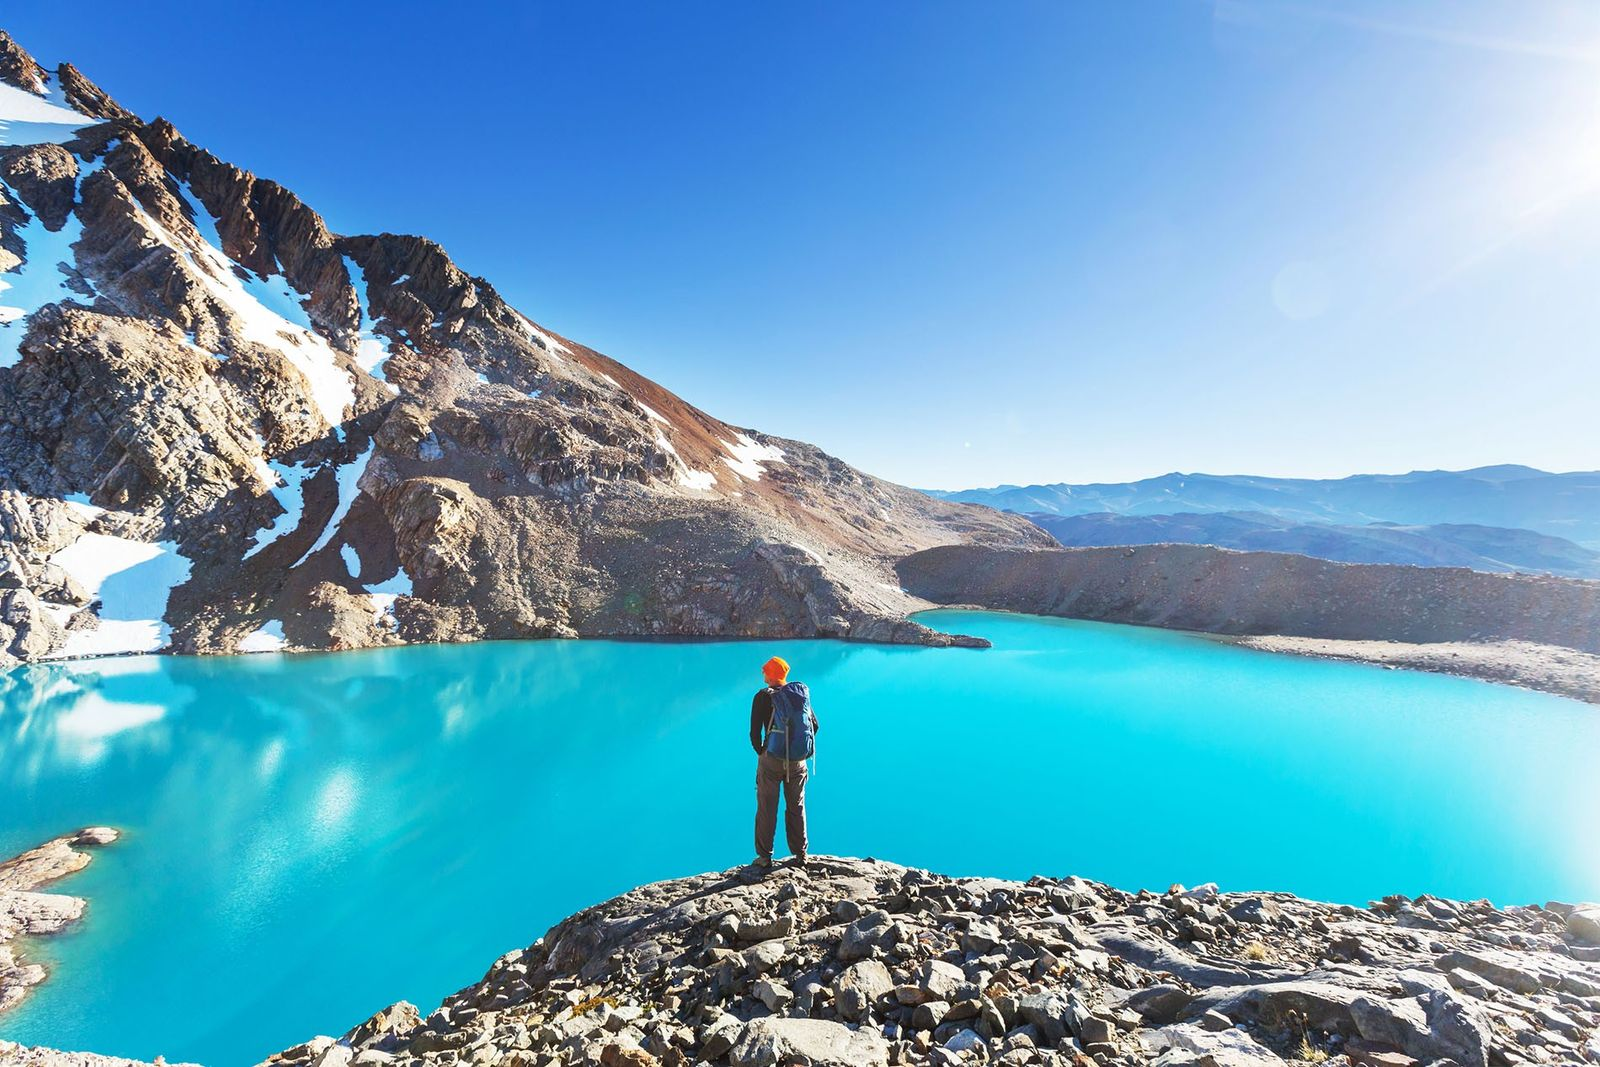 Get the lowdown on how to take the best images possible on your own expedition.